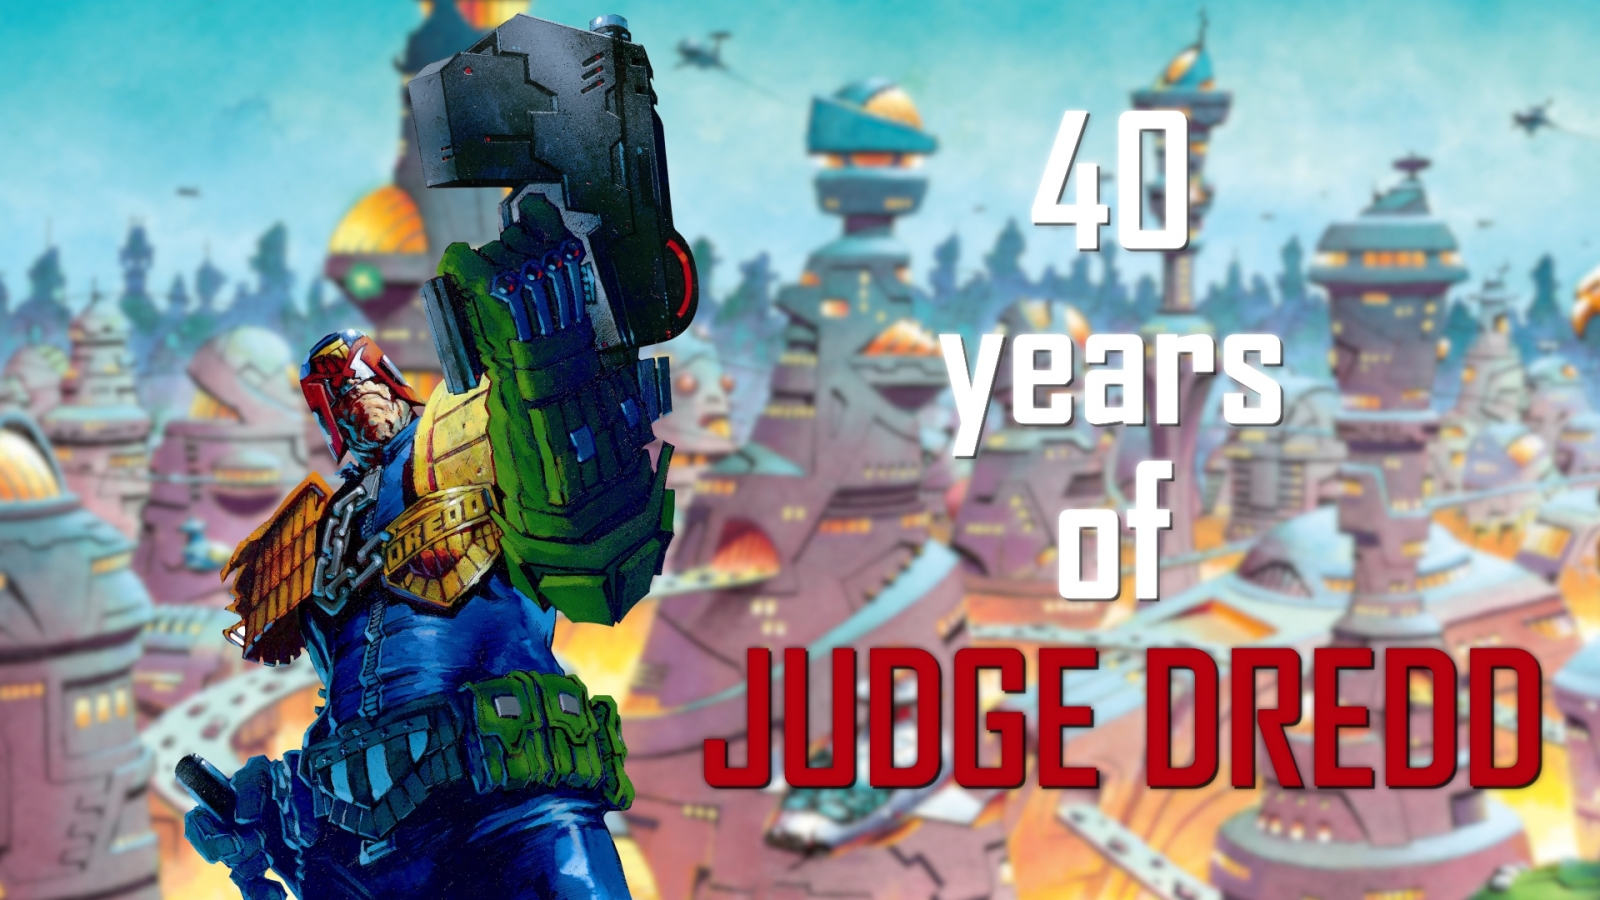 40 years of Judge Dredd